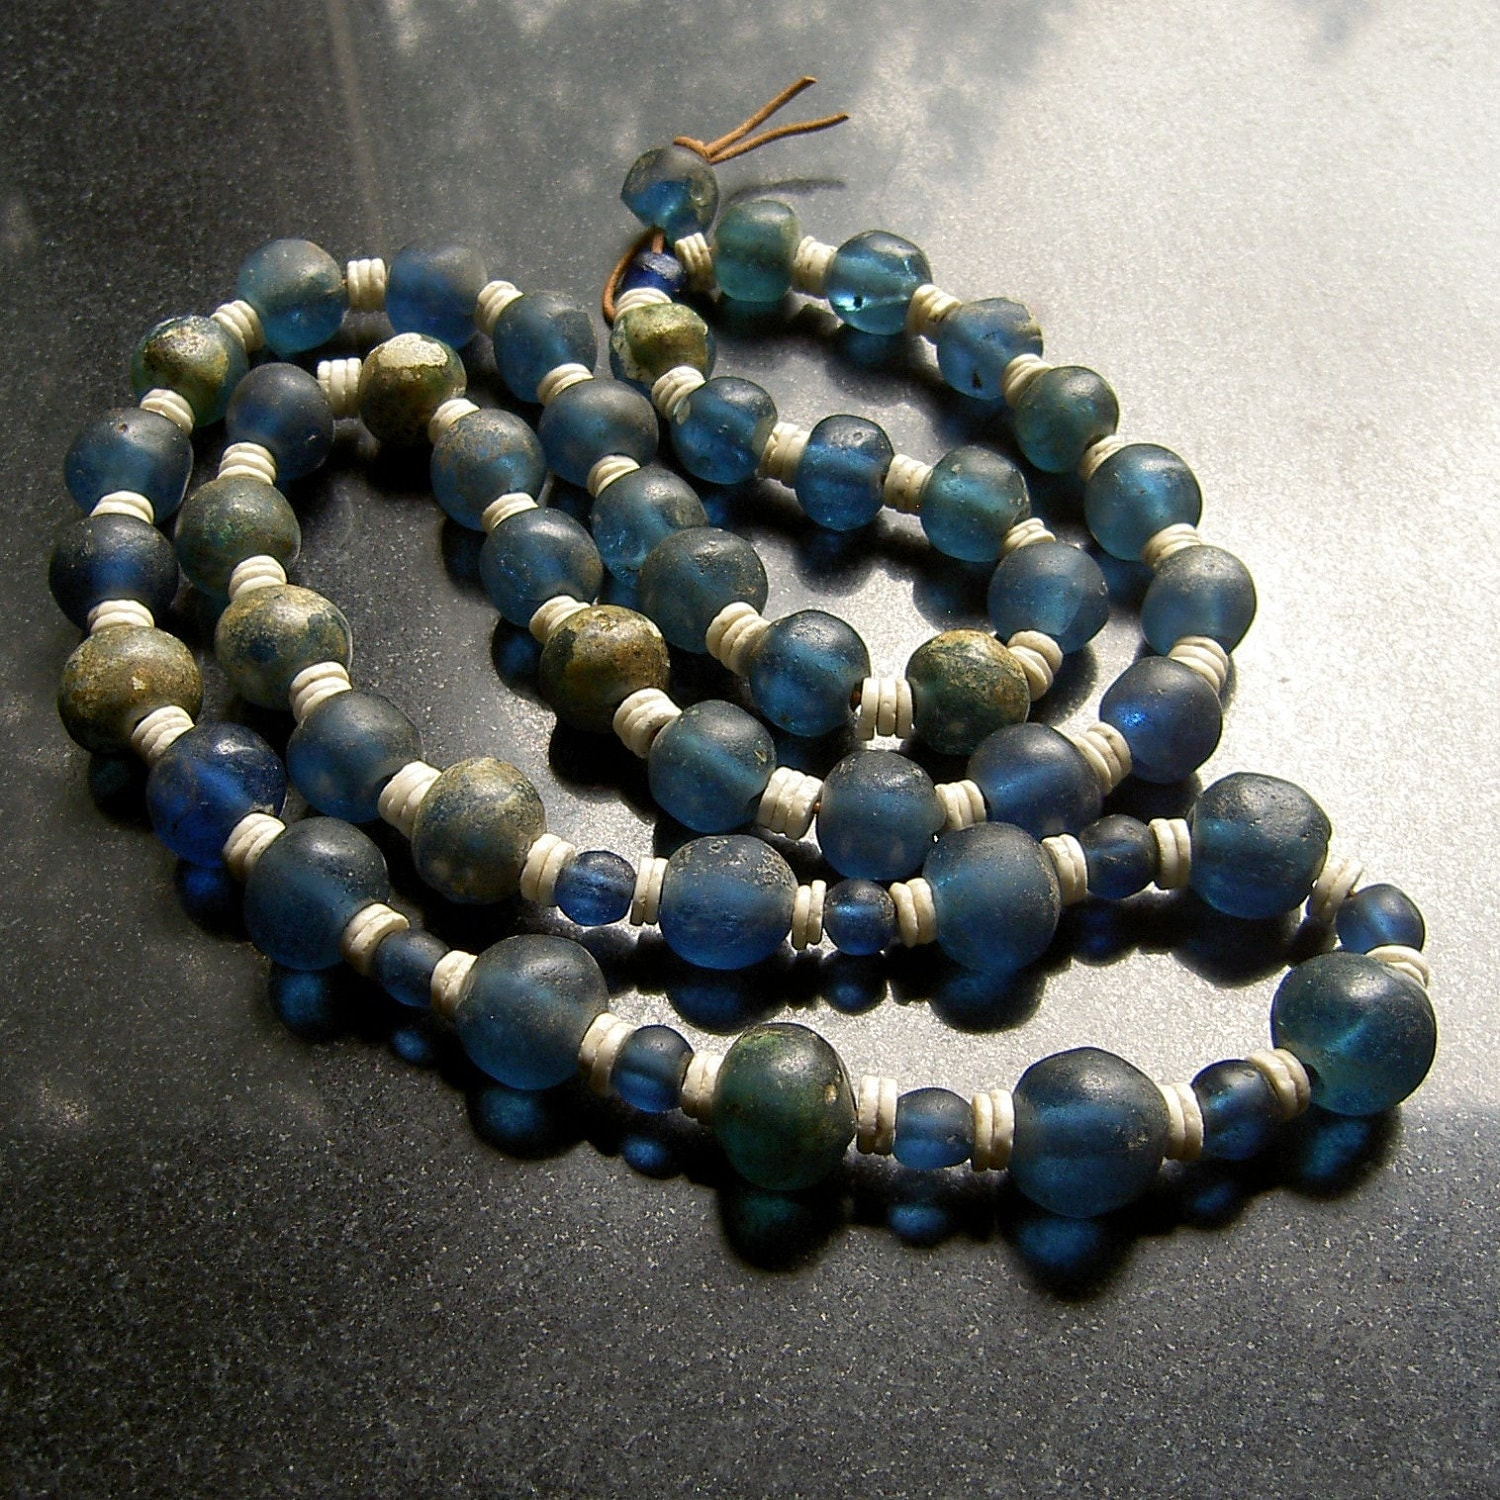 Bead Glass African Beads: Medieval African Blue Folded Glass Beads